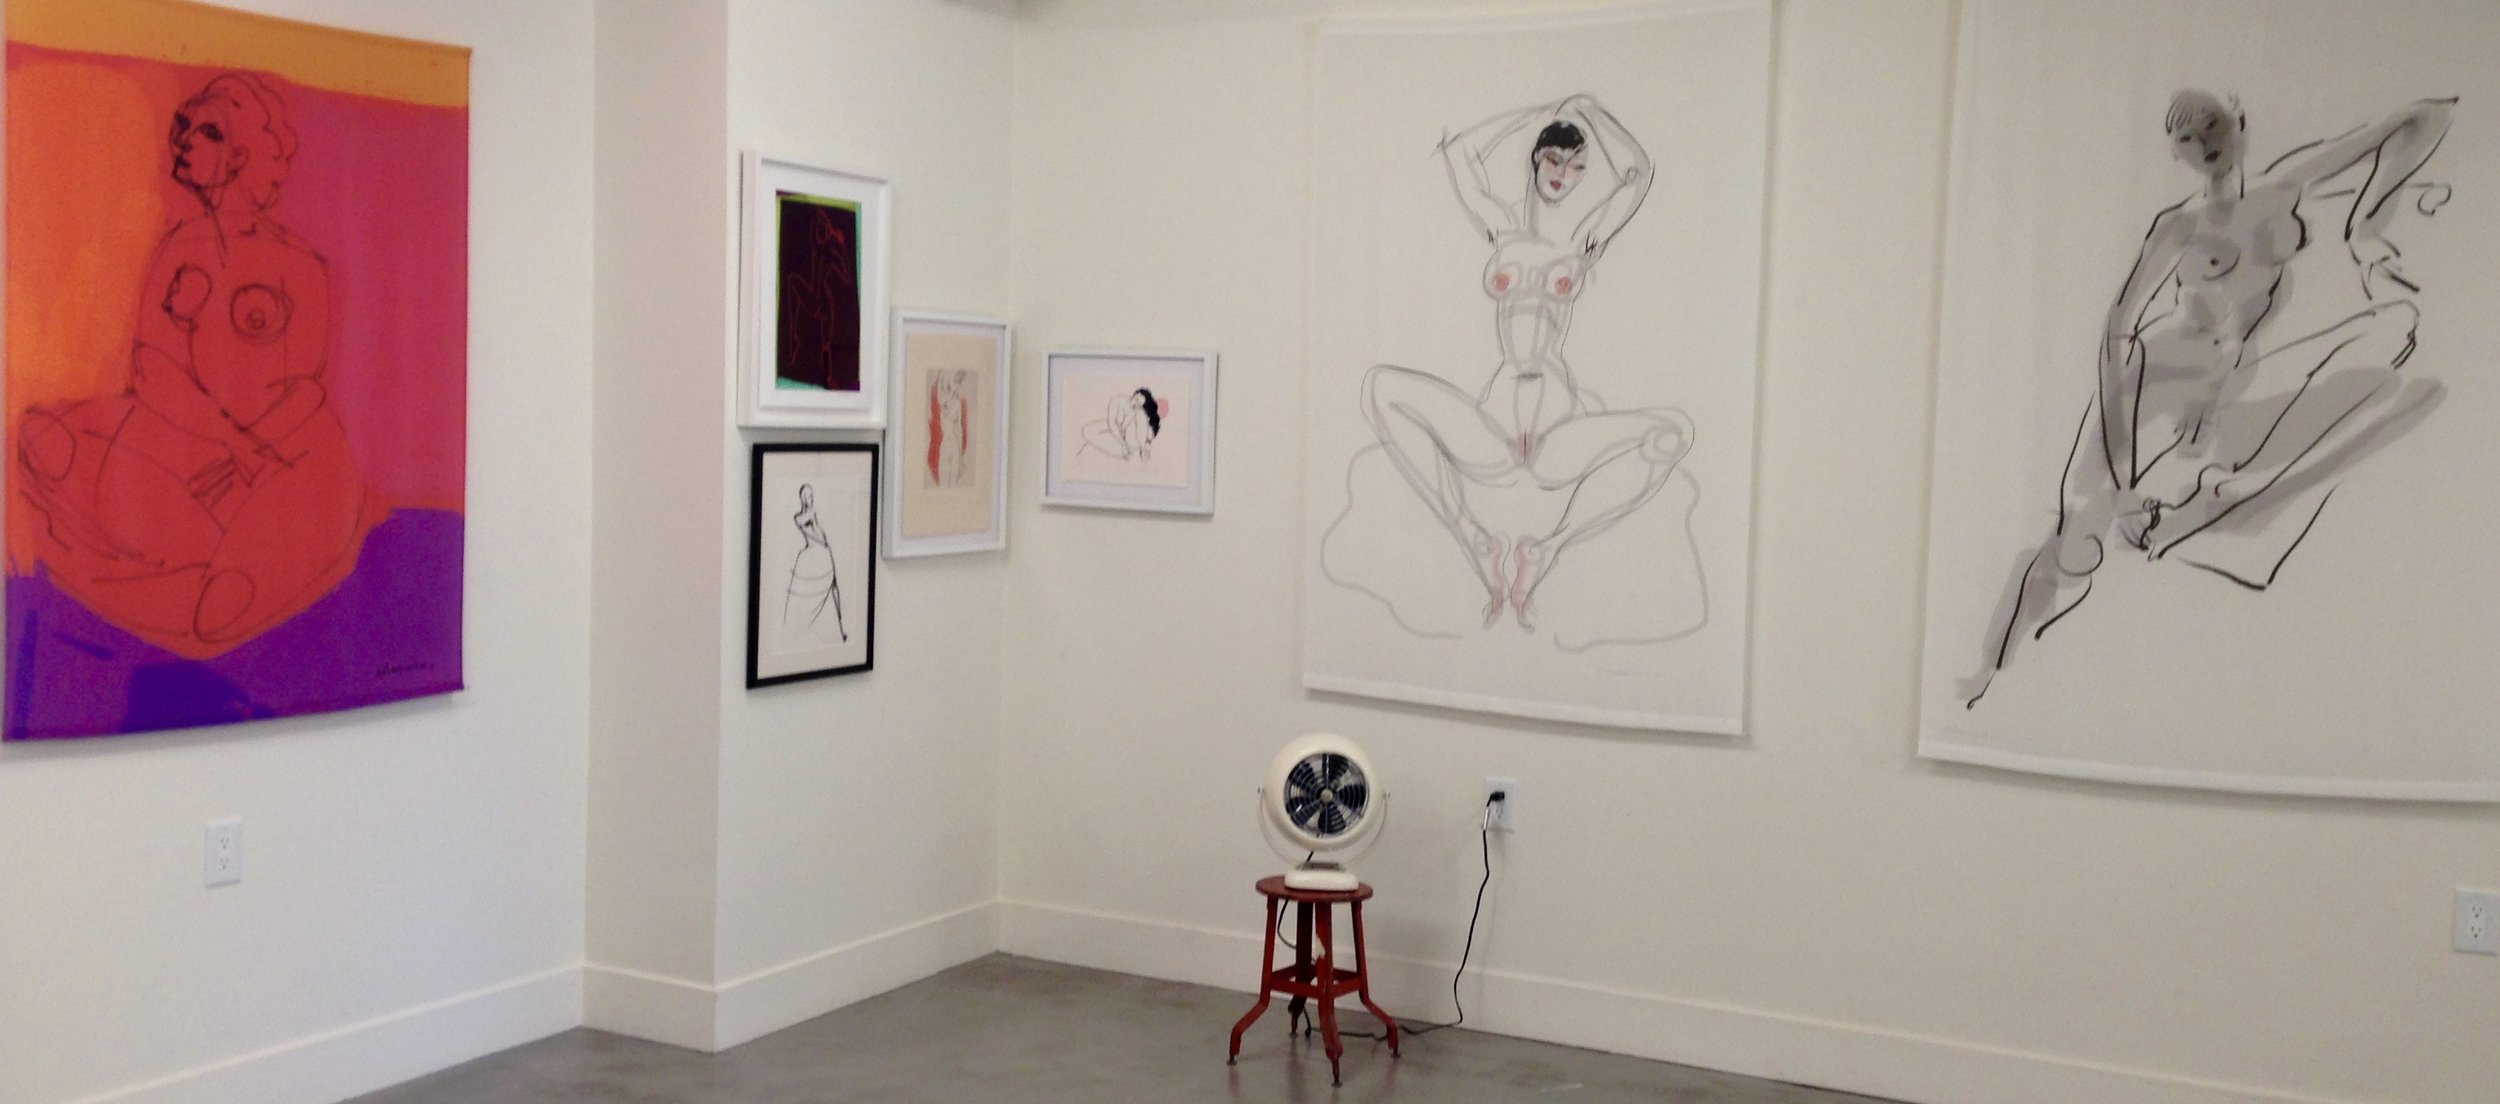 One of my corners of the gallery showing a color block silk scroll (left), two of my white silk scrolls (right), three of my prints and a drawing (center) Plus the fan.   November 2016